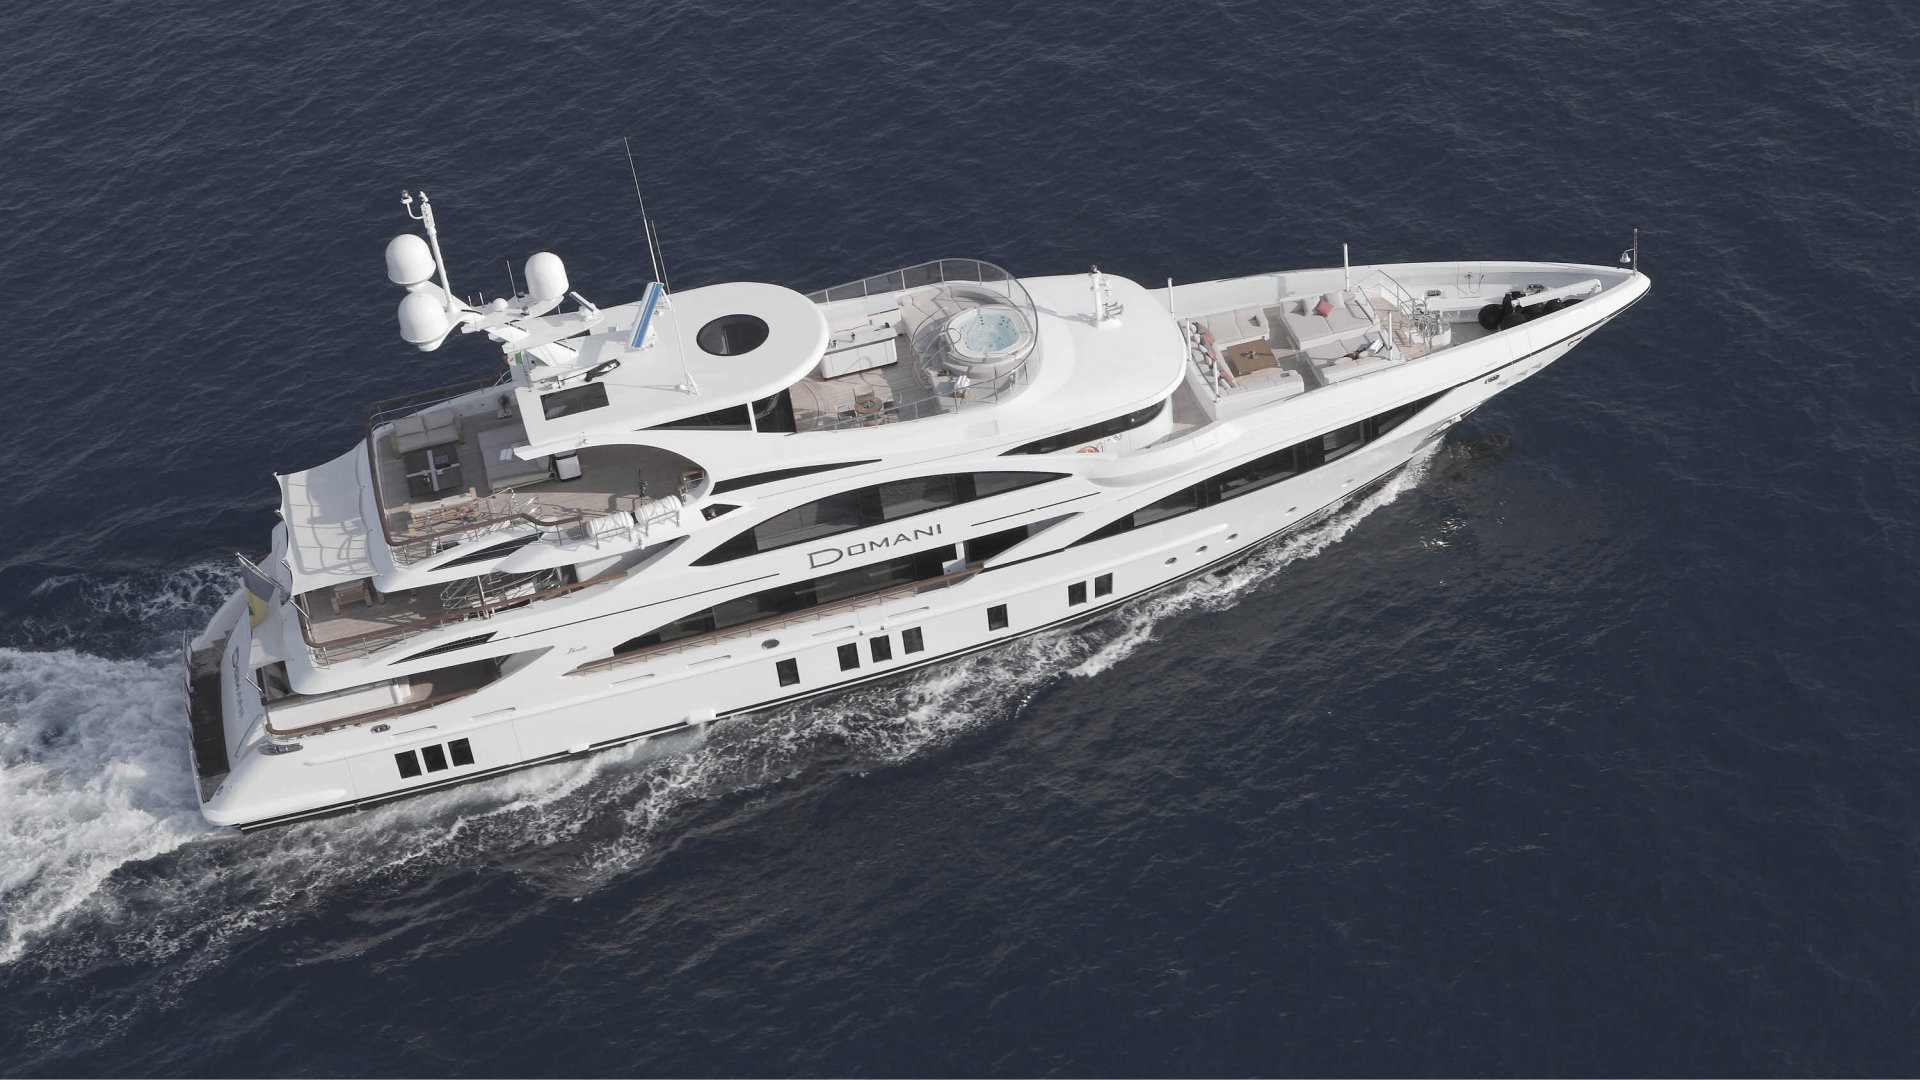 Project of M / Y Domani realized by Benetti Shipyard